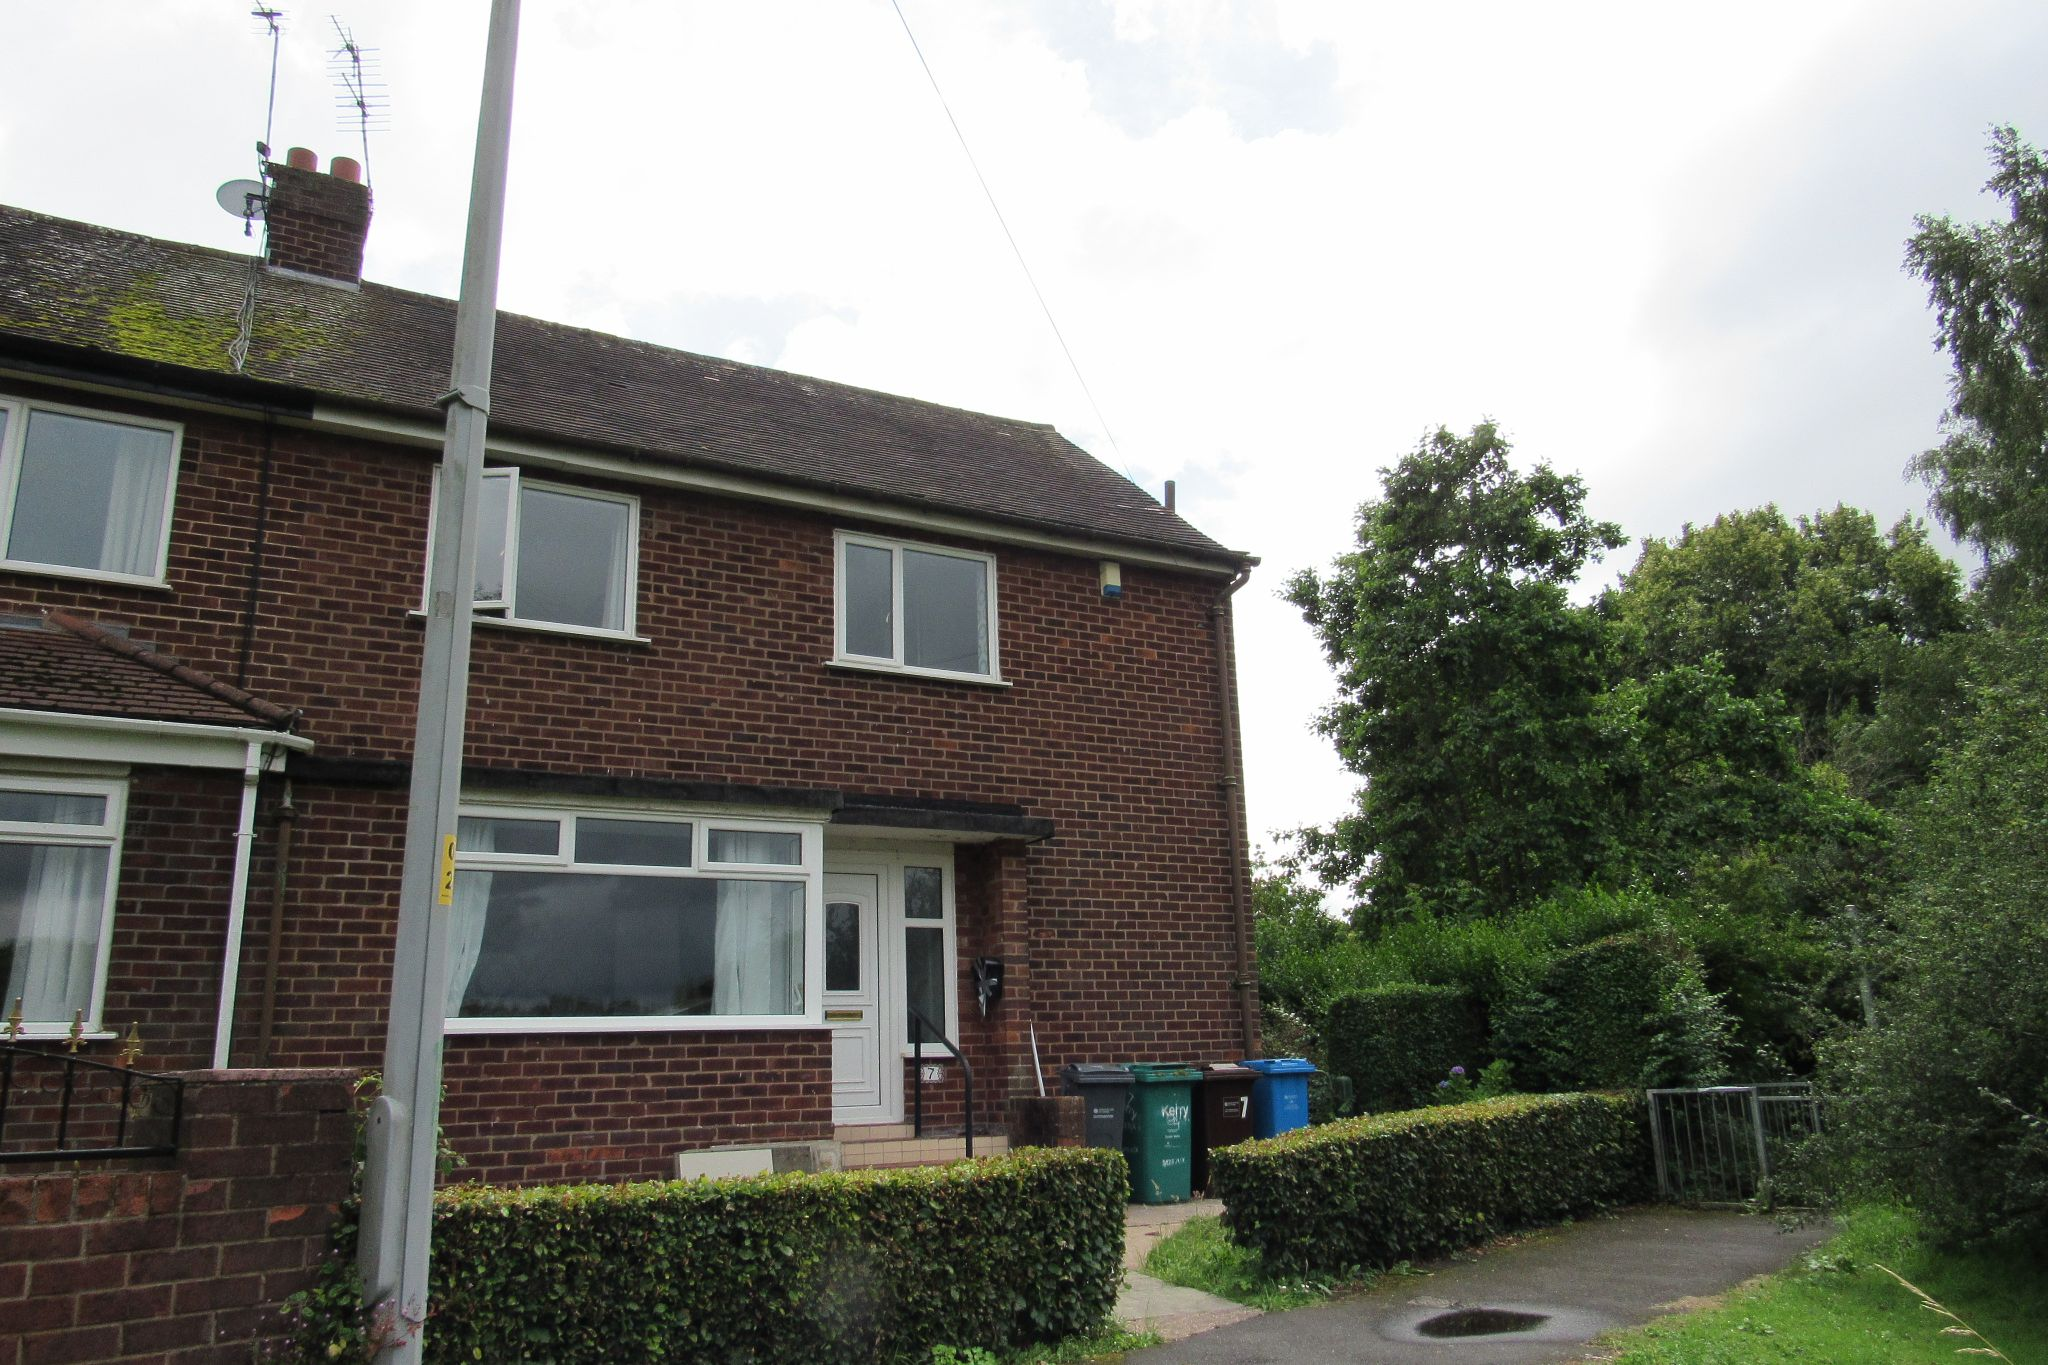 3 bedroom semi-detached house SSTC in Wythenshawe - Photograph 22.